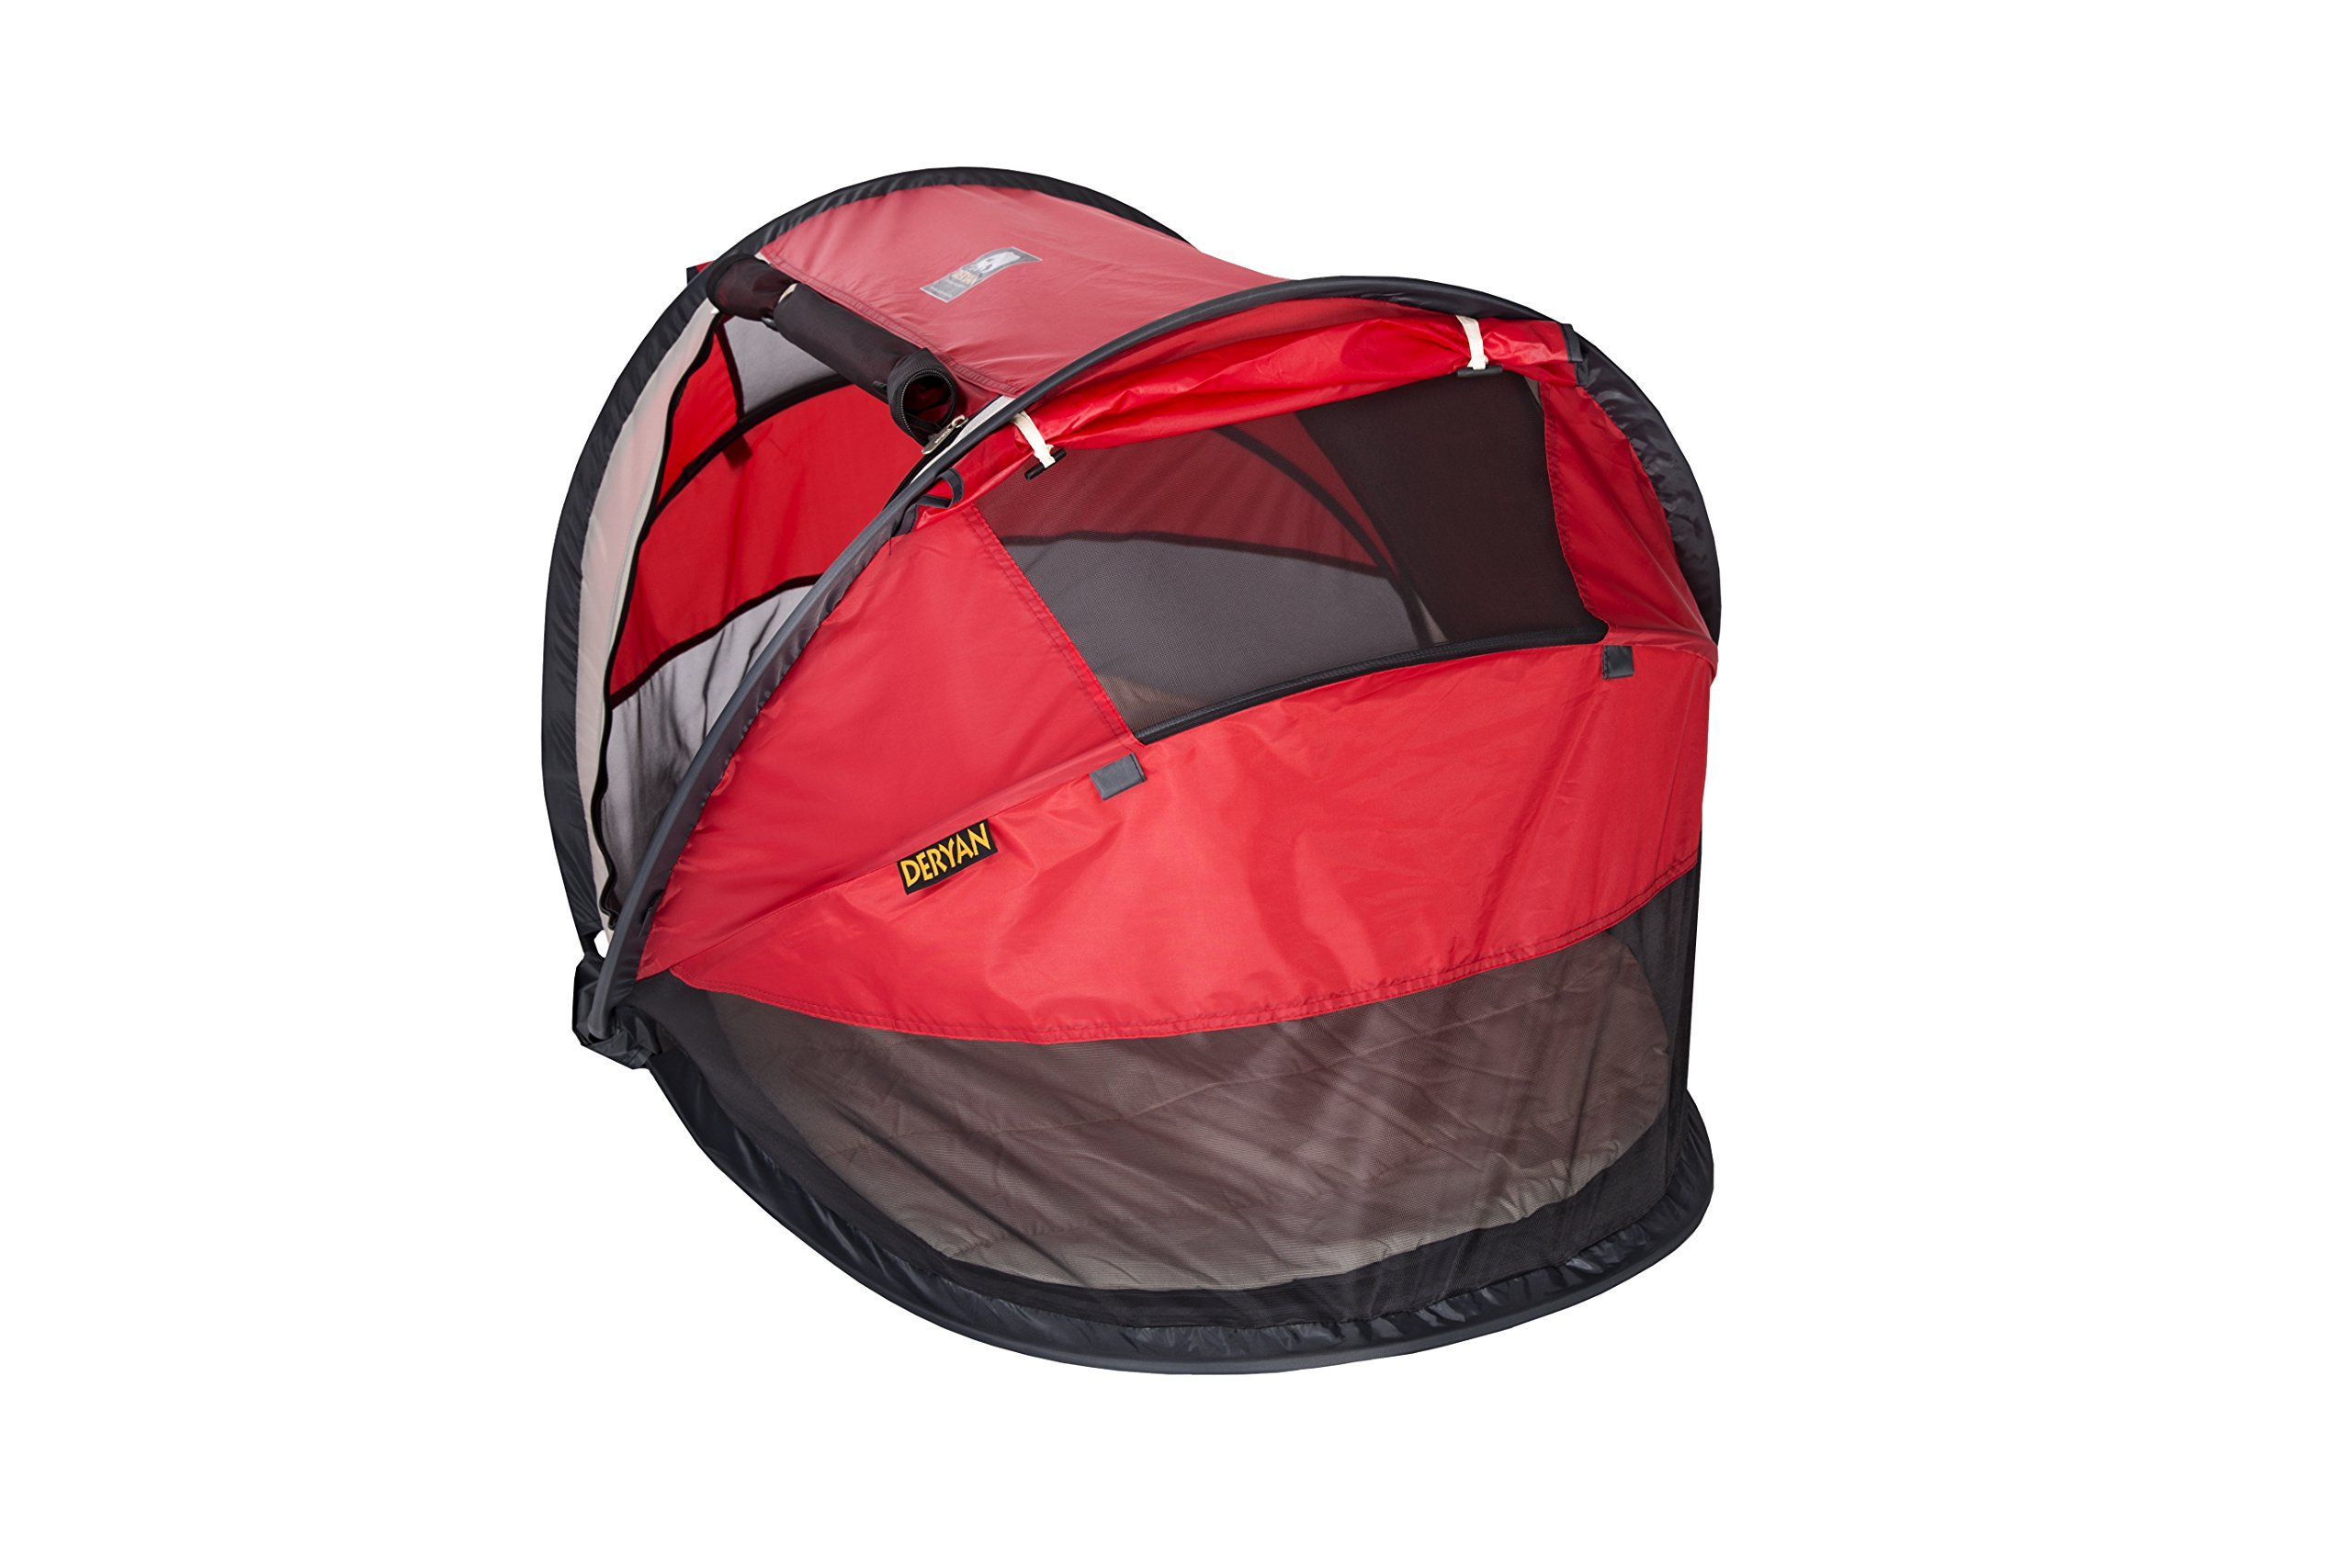 Travel Cot Peuter Luxe (Red) Deryan Perfect for the beach, the park or the back garden for playing in or for naps Can Pops up immediately, no poles or fiddly frames to put together. Lightweight and compact in its zip up bag 4